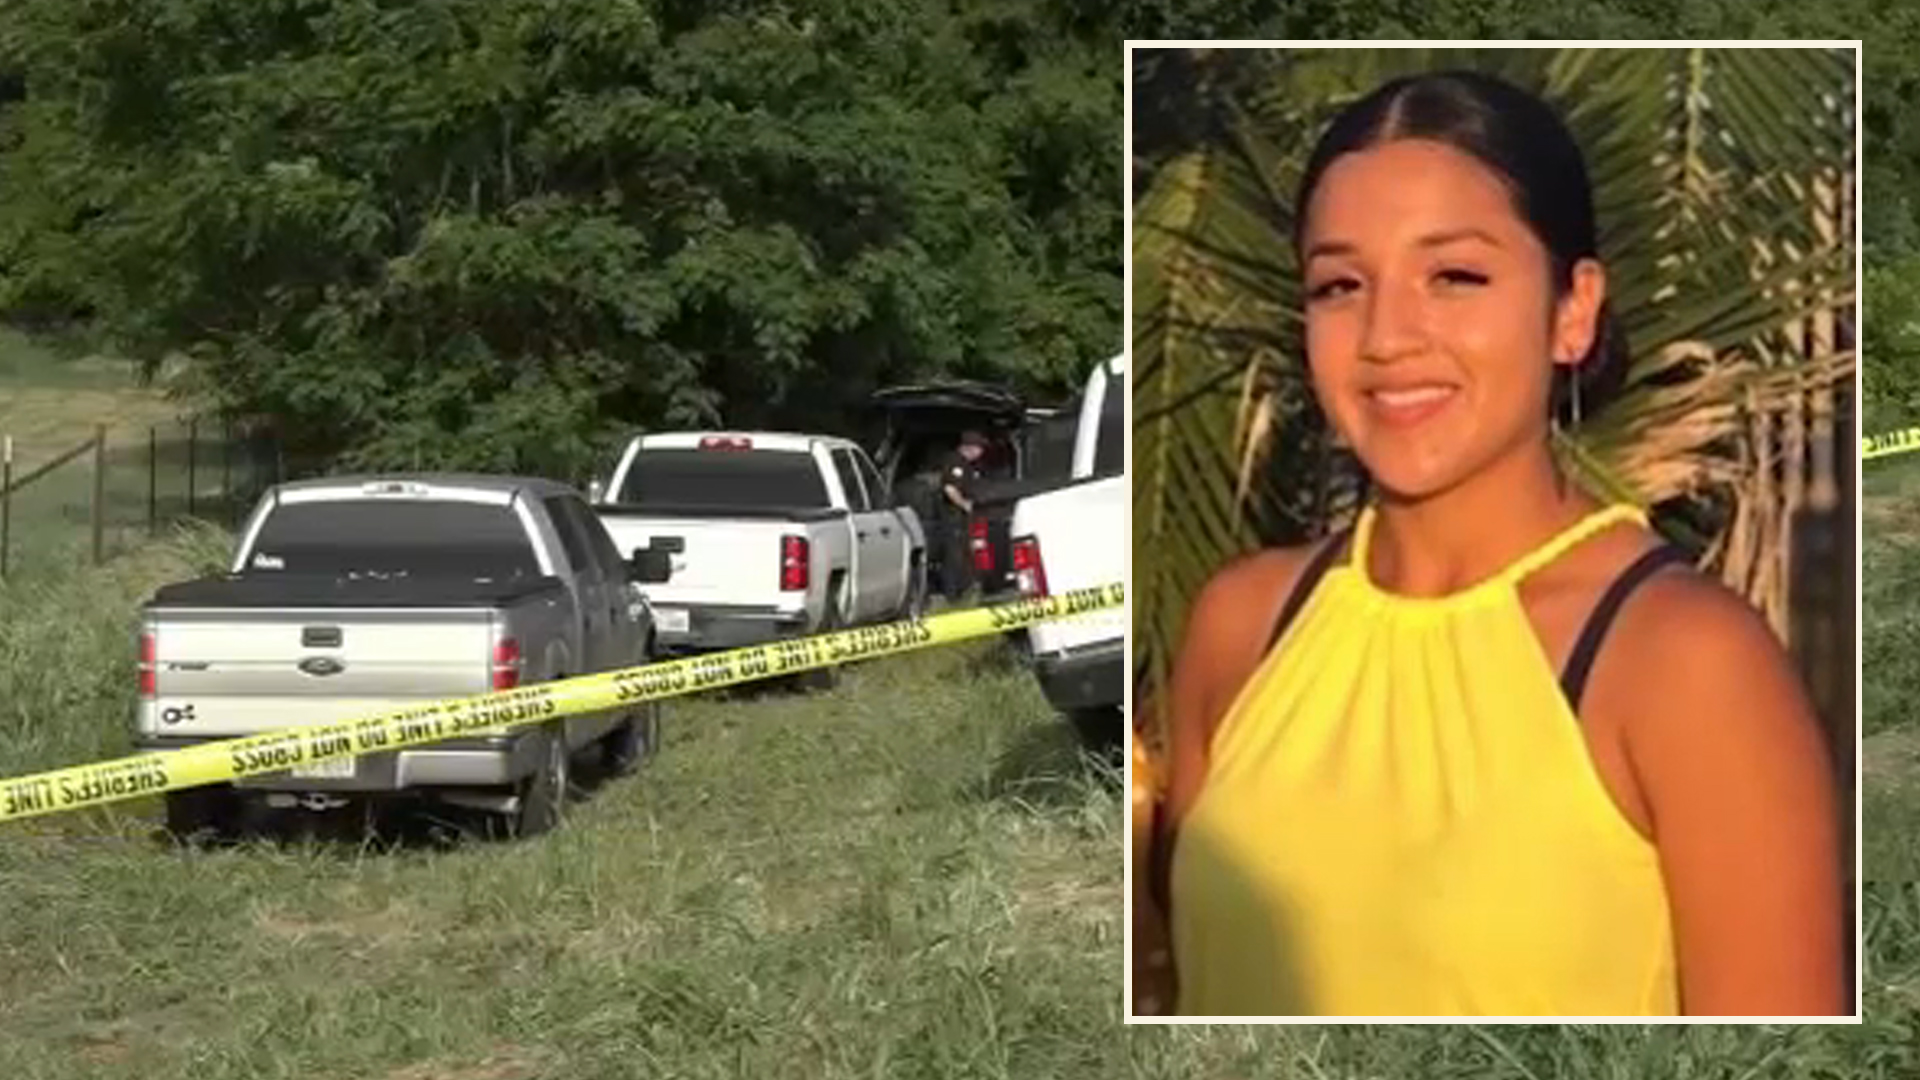 Army officials disputes claims Vanessa Guillen was sexually harassed before her disappearance